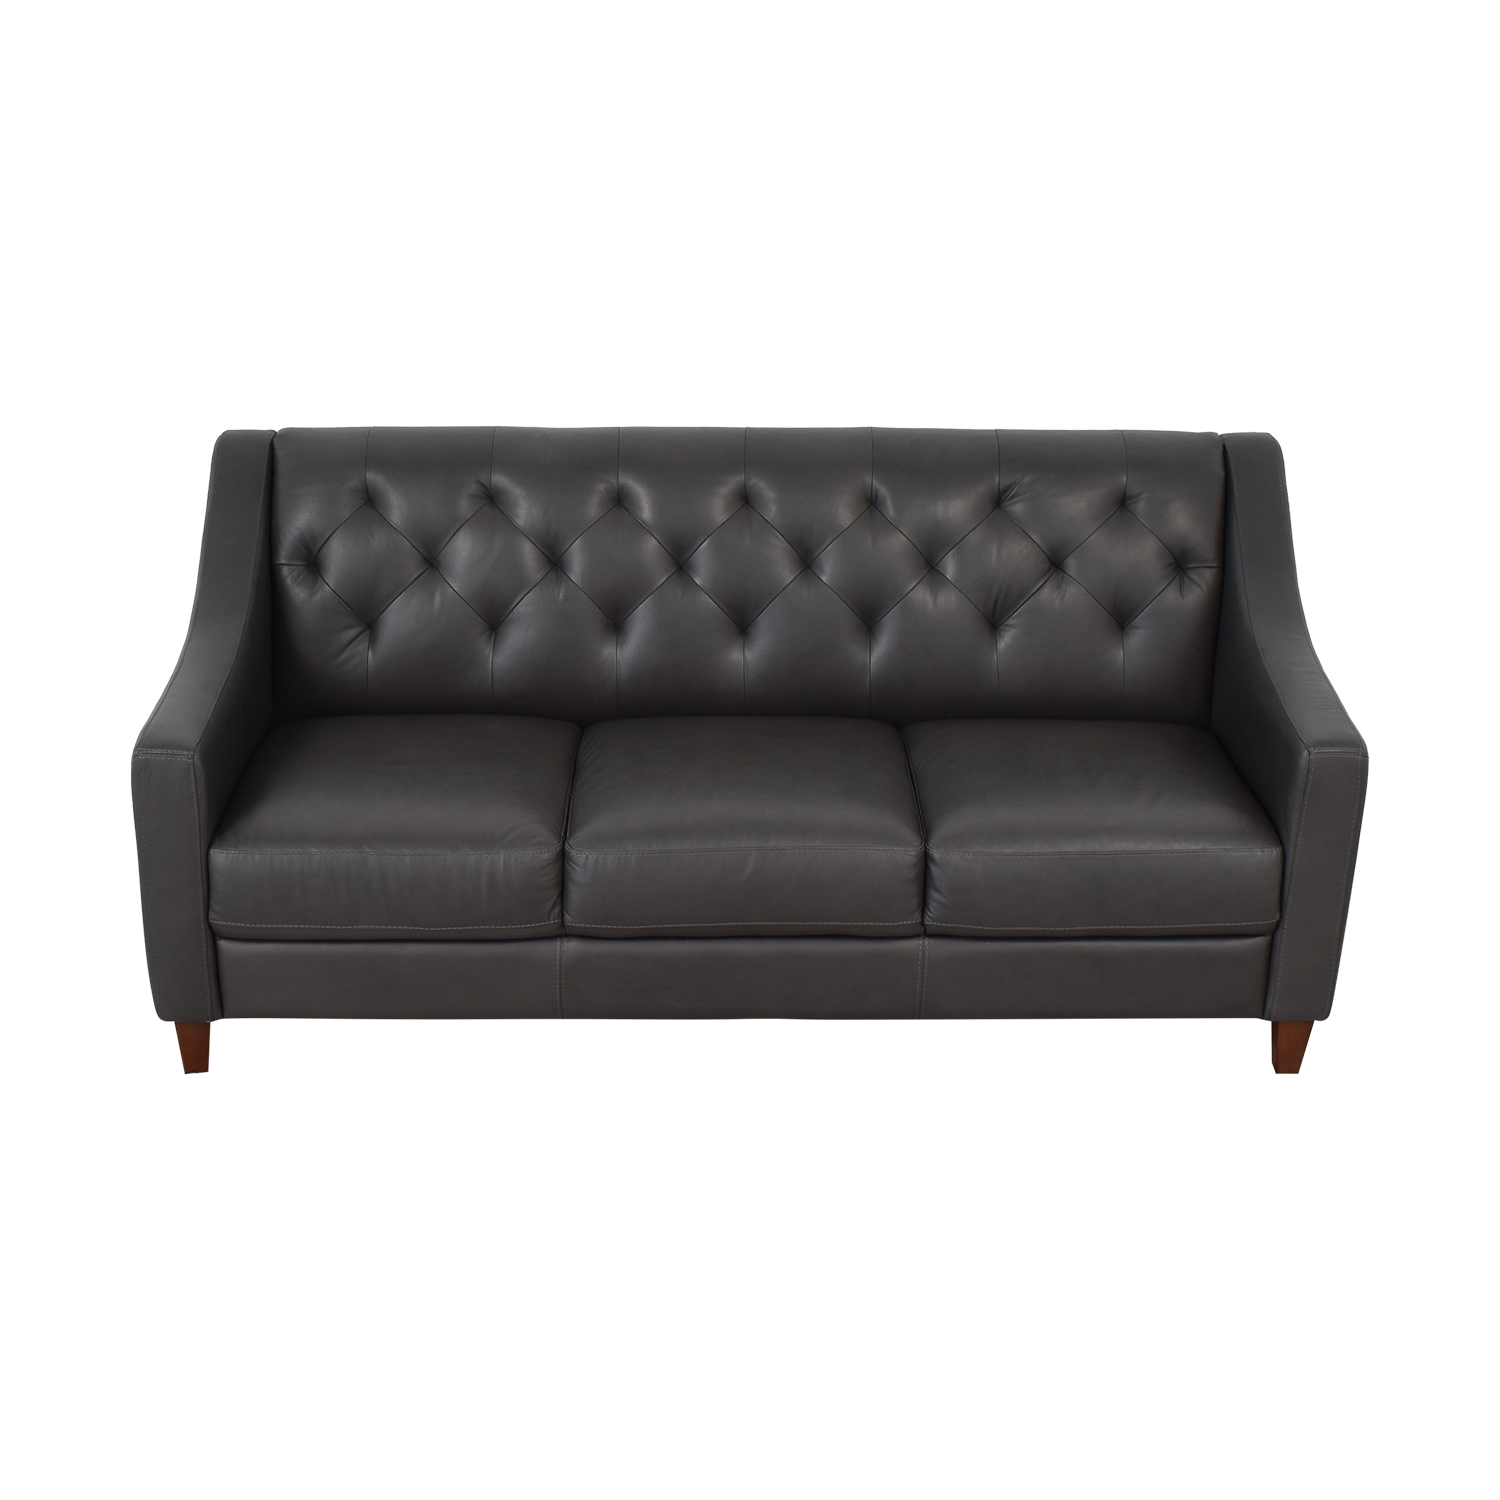 Macy's Macy's Leather Three-Seat Sofa dimensions